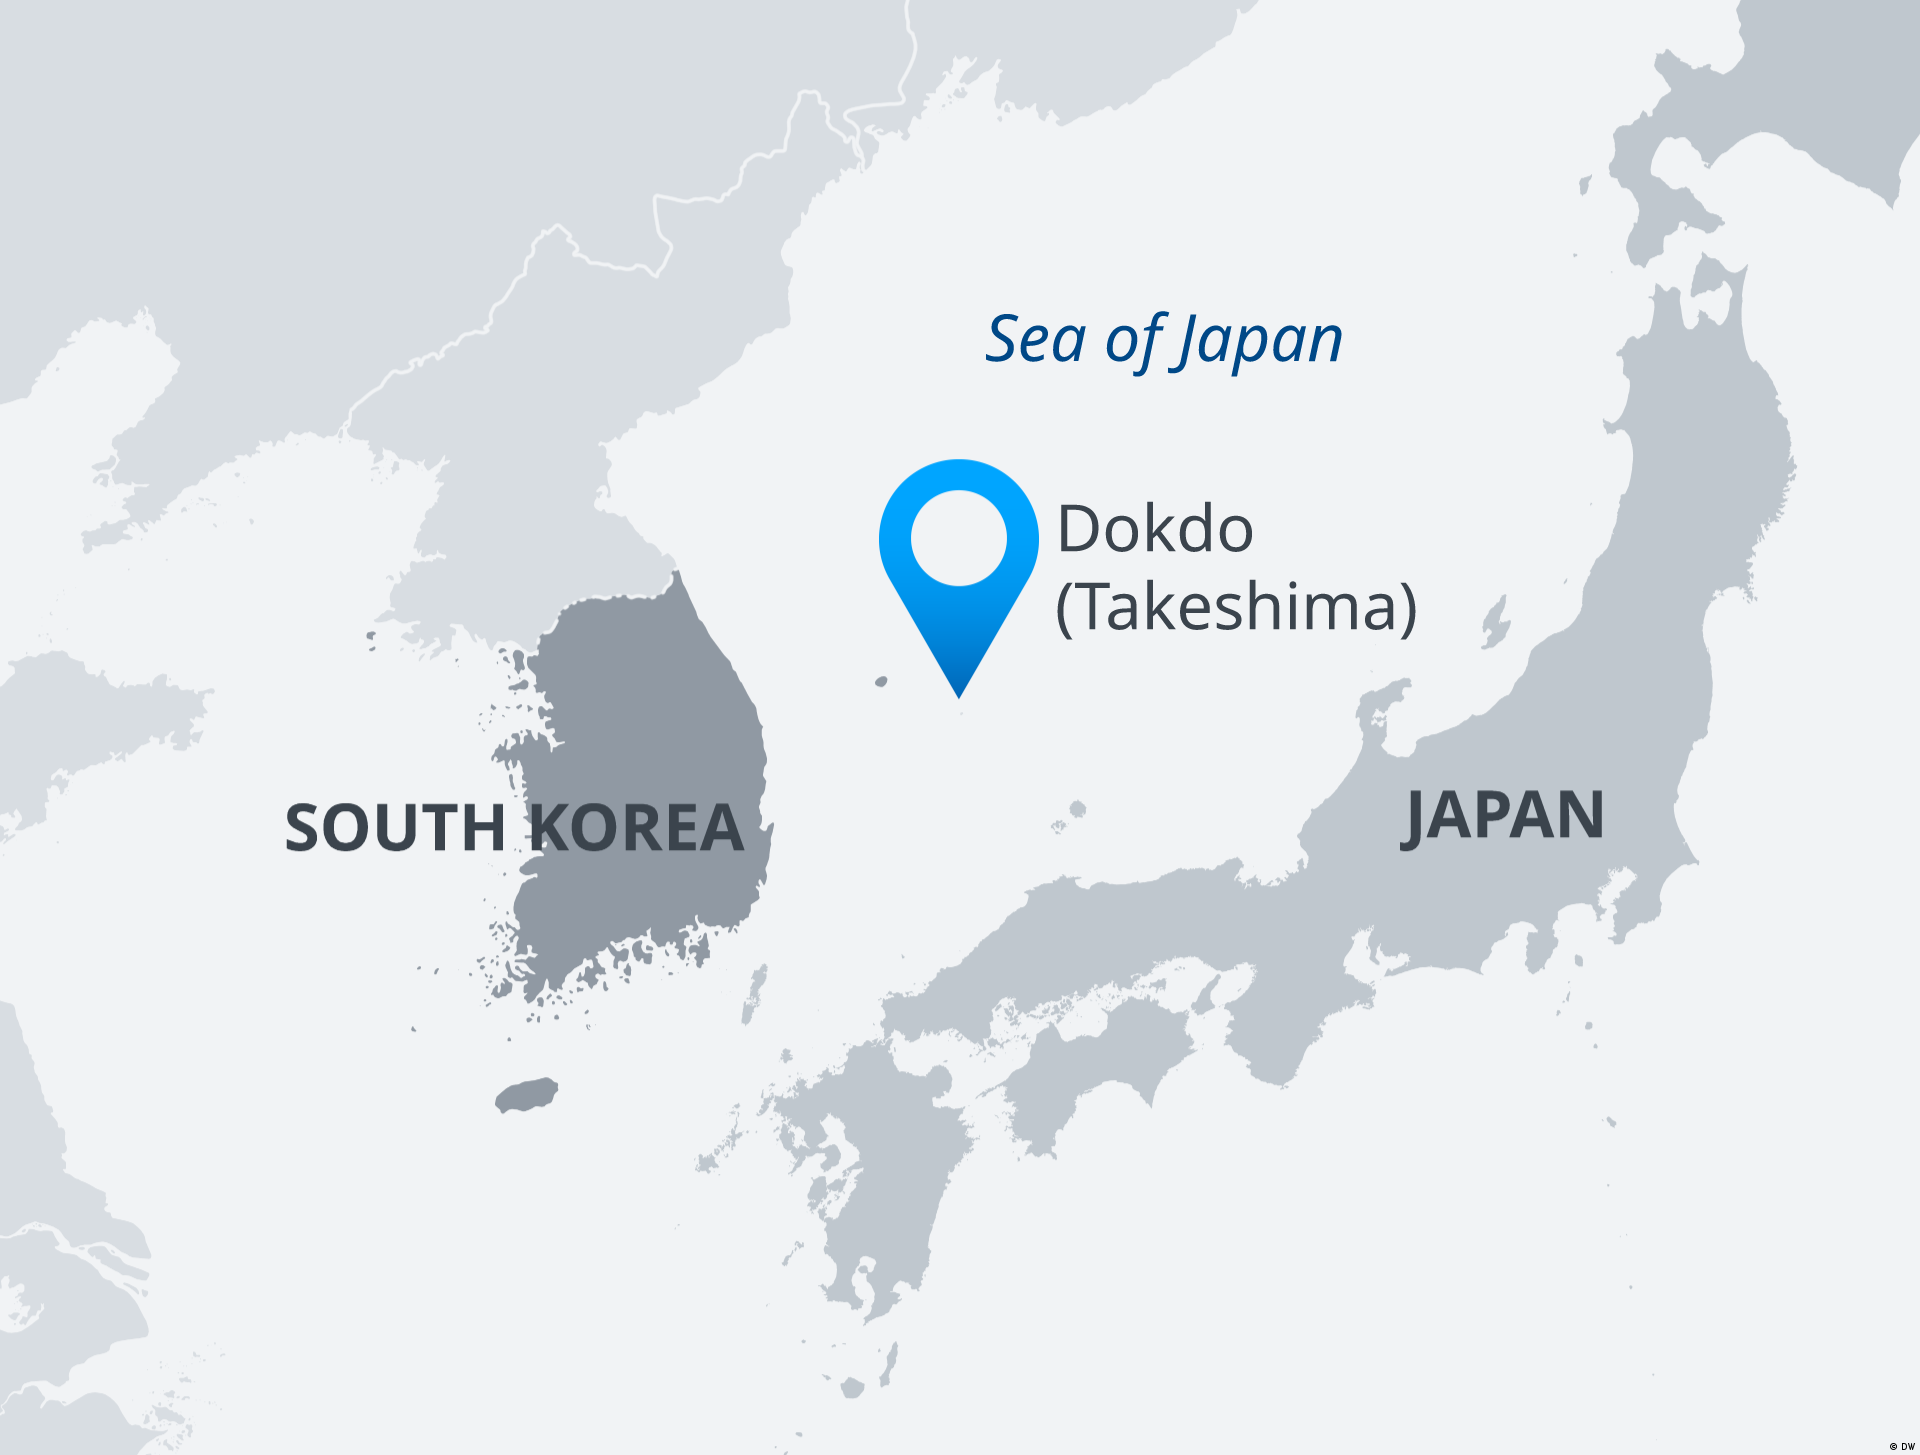 Map of Sea of Japan with location of Dokdo